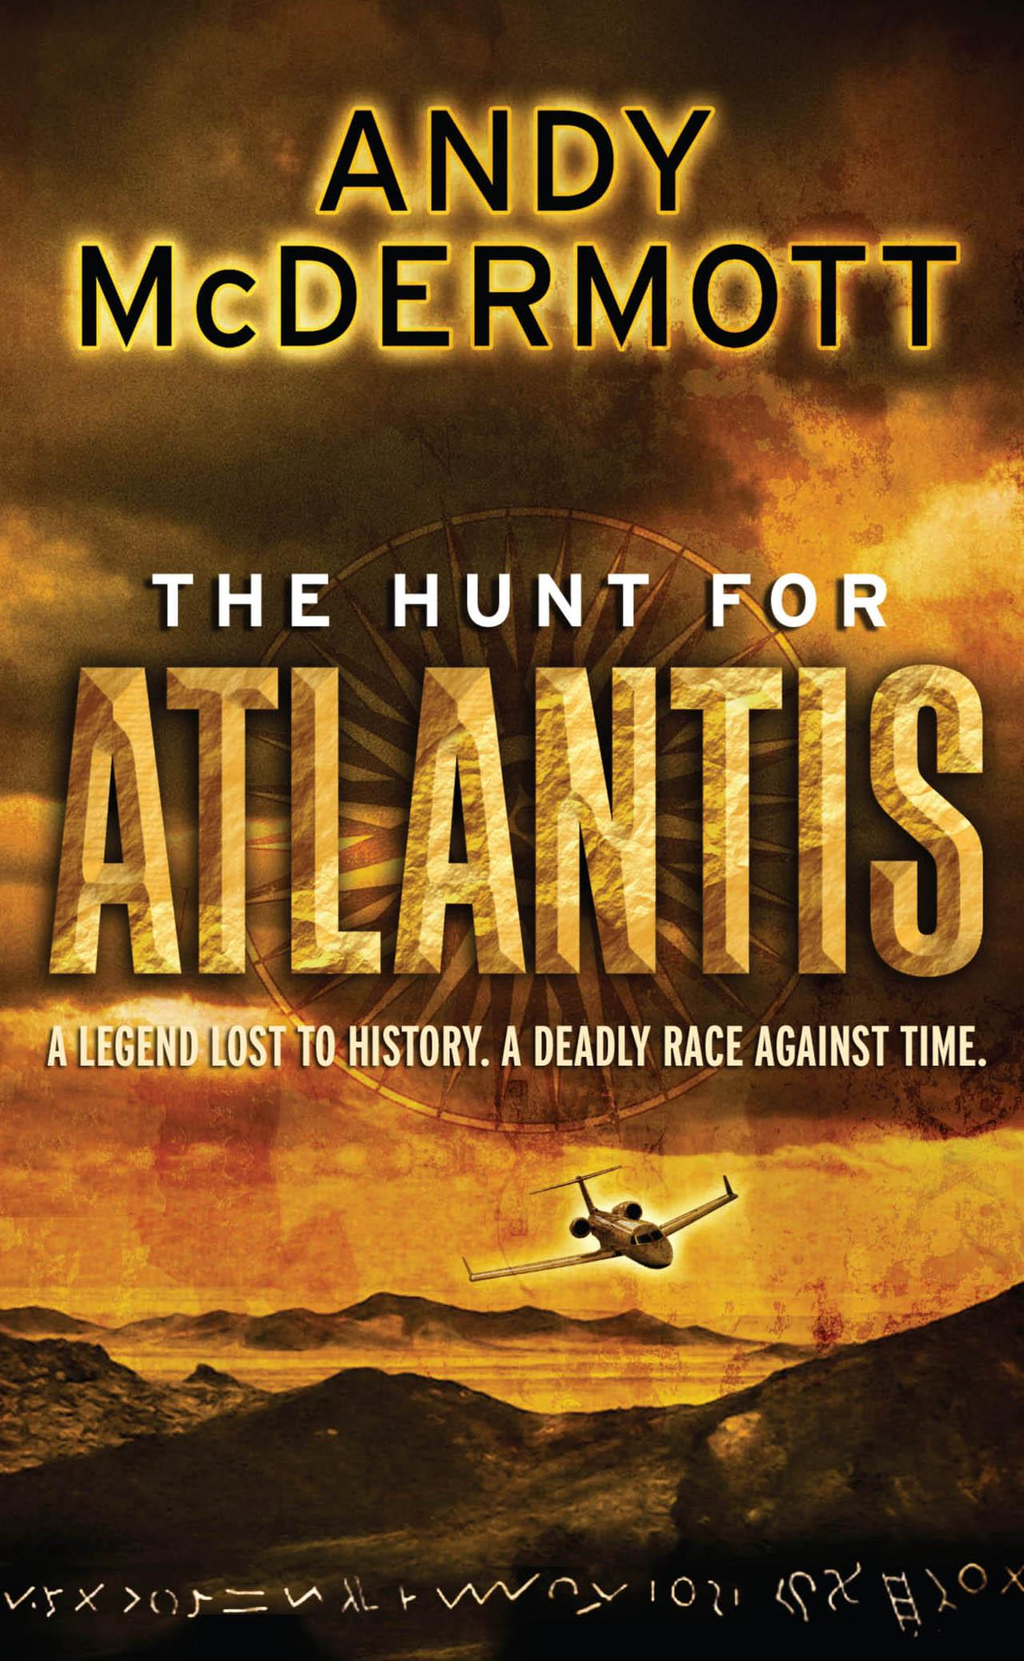 The Hunt For Atlantis (Andy McDermott)